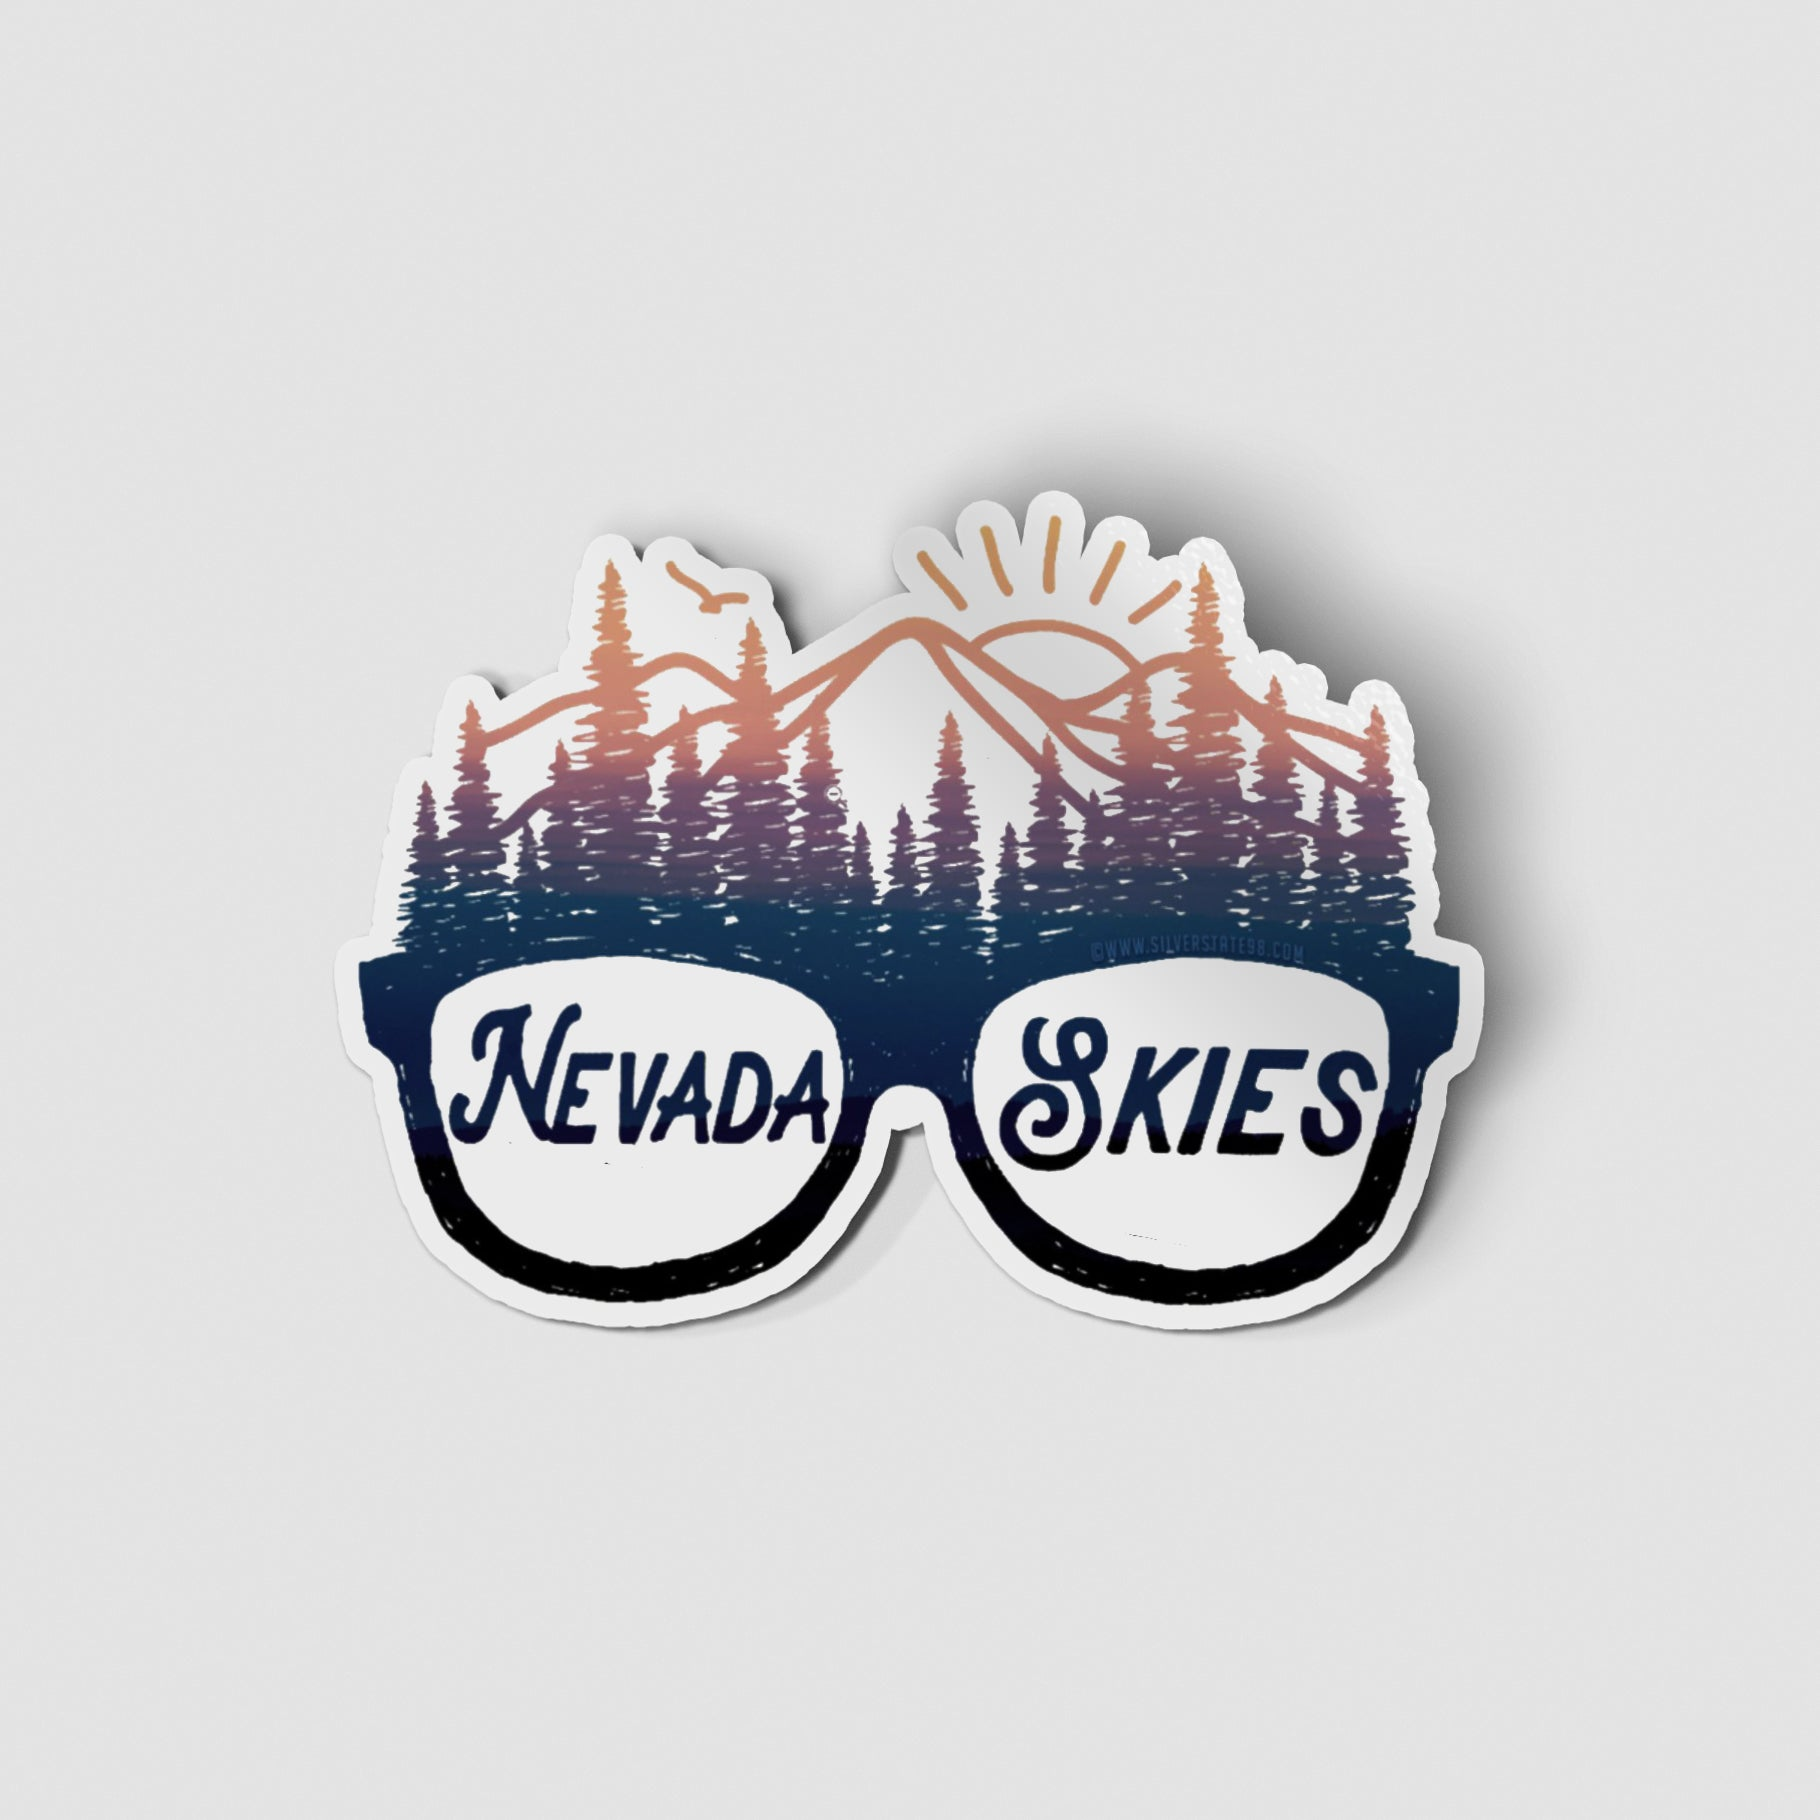 Nevada Skies Sticker